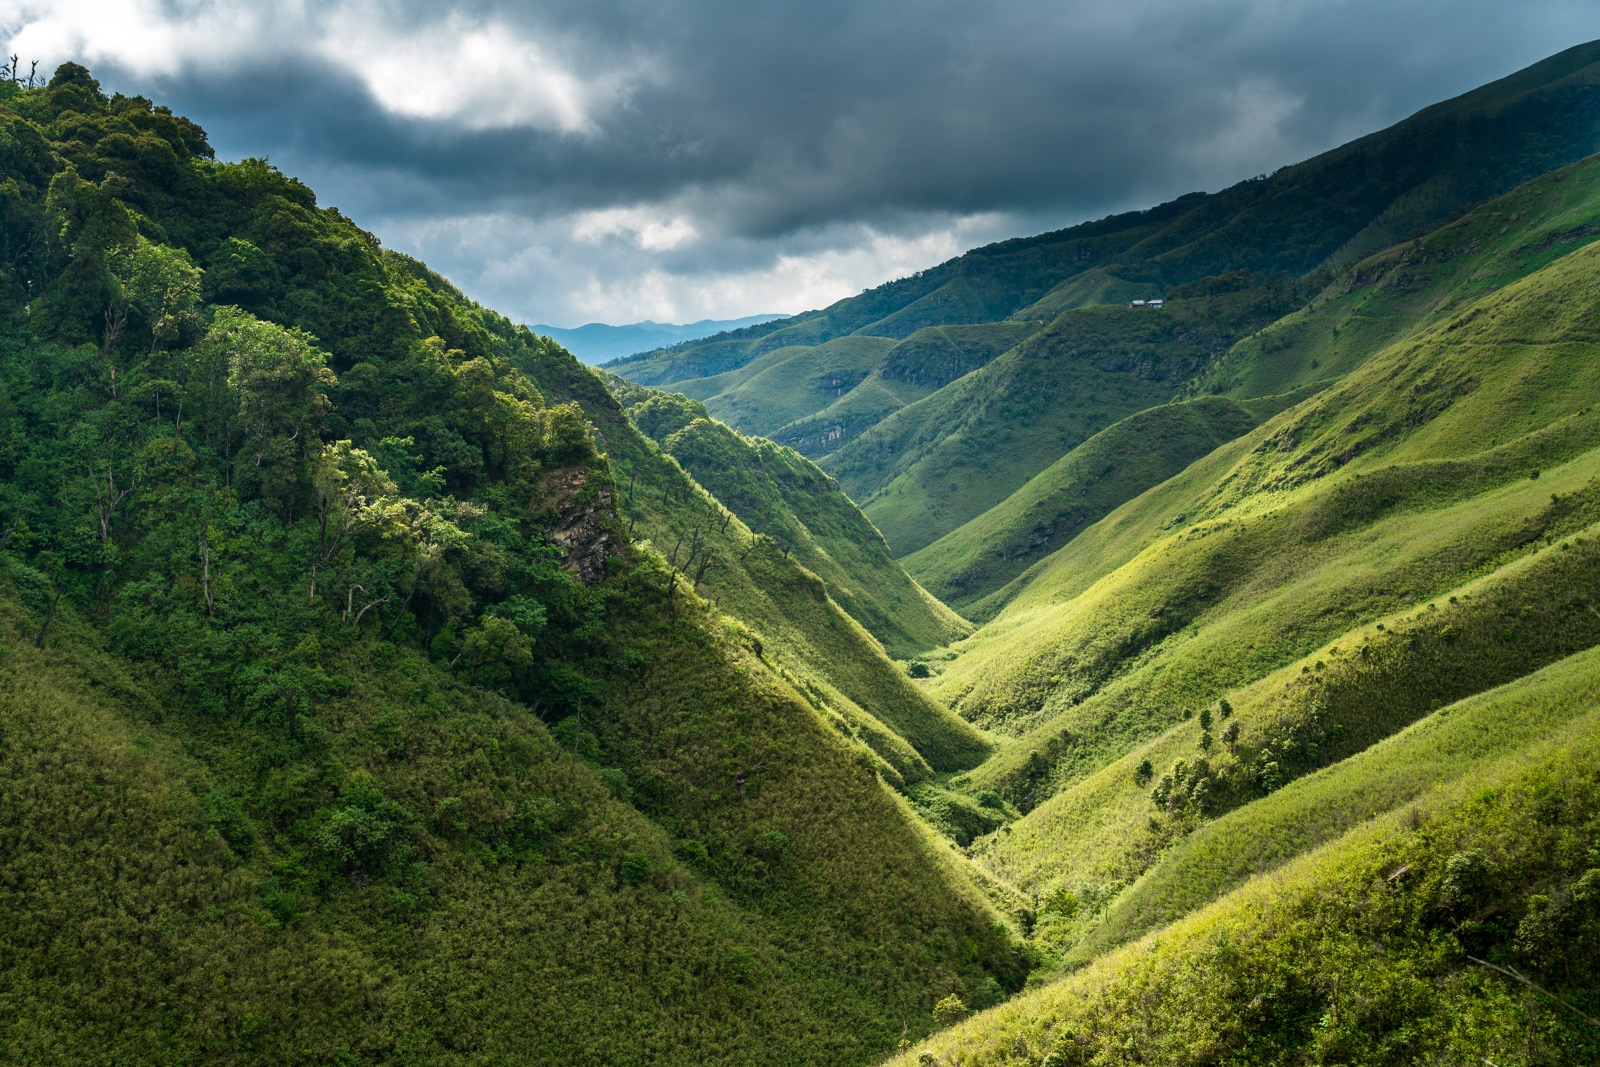 How to get to Dzukou Valley from Kohima, Nagaland, India - The path leading through Dzukou Valley to the rest house - Lost With Purpose